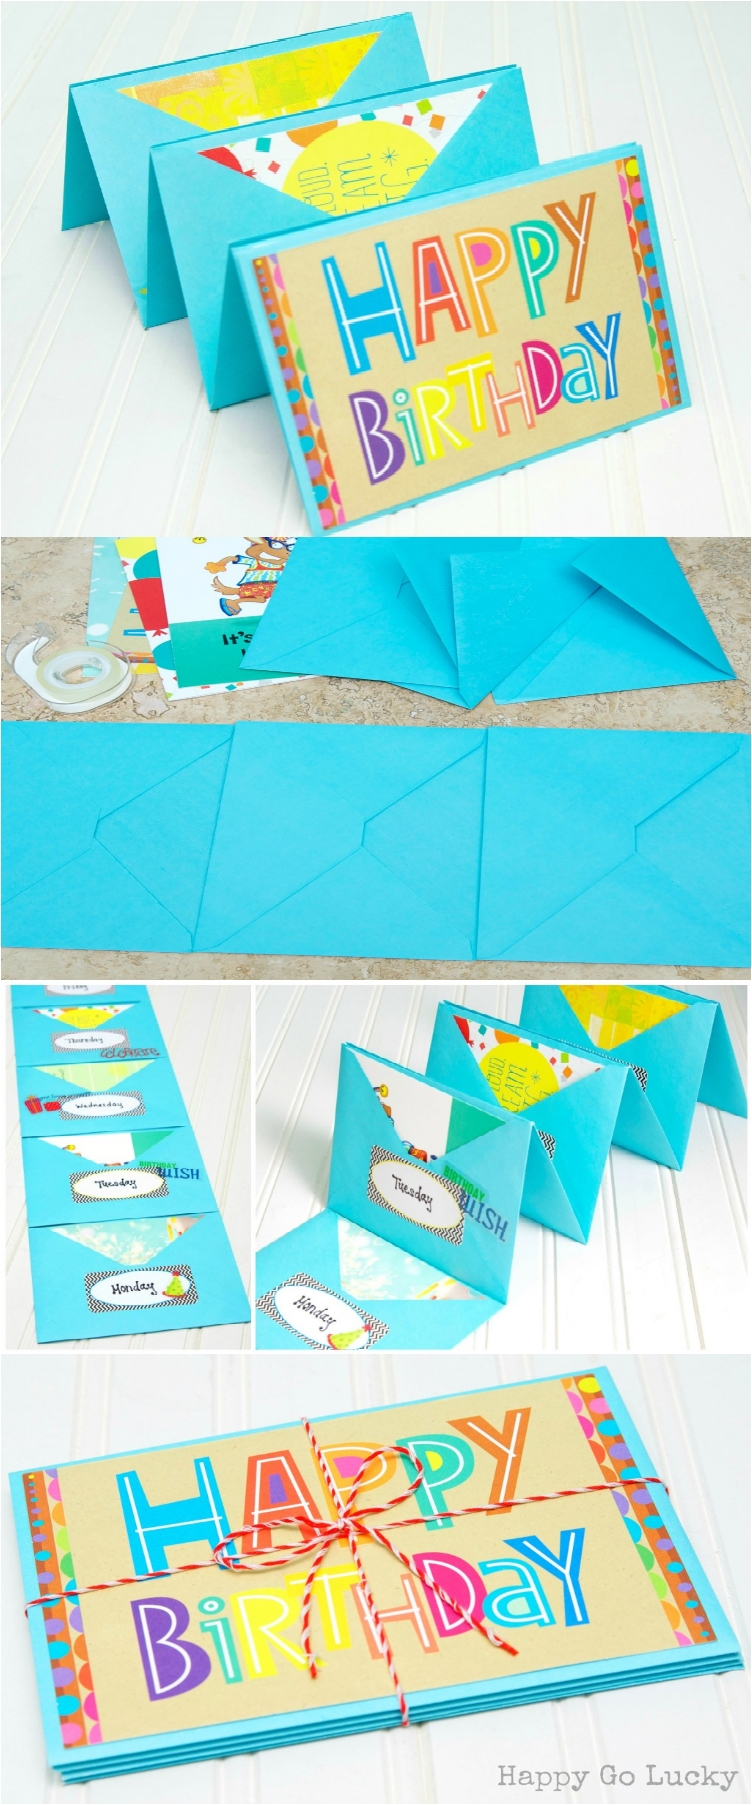 17 Fun and Thoughtful Birthday Cards to DIY